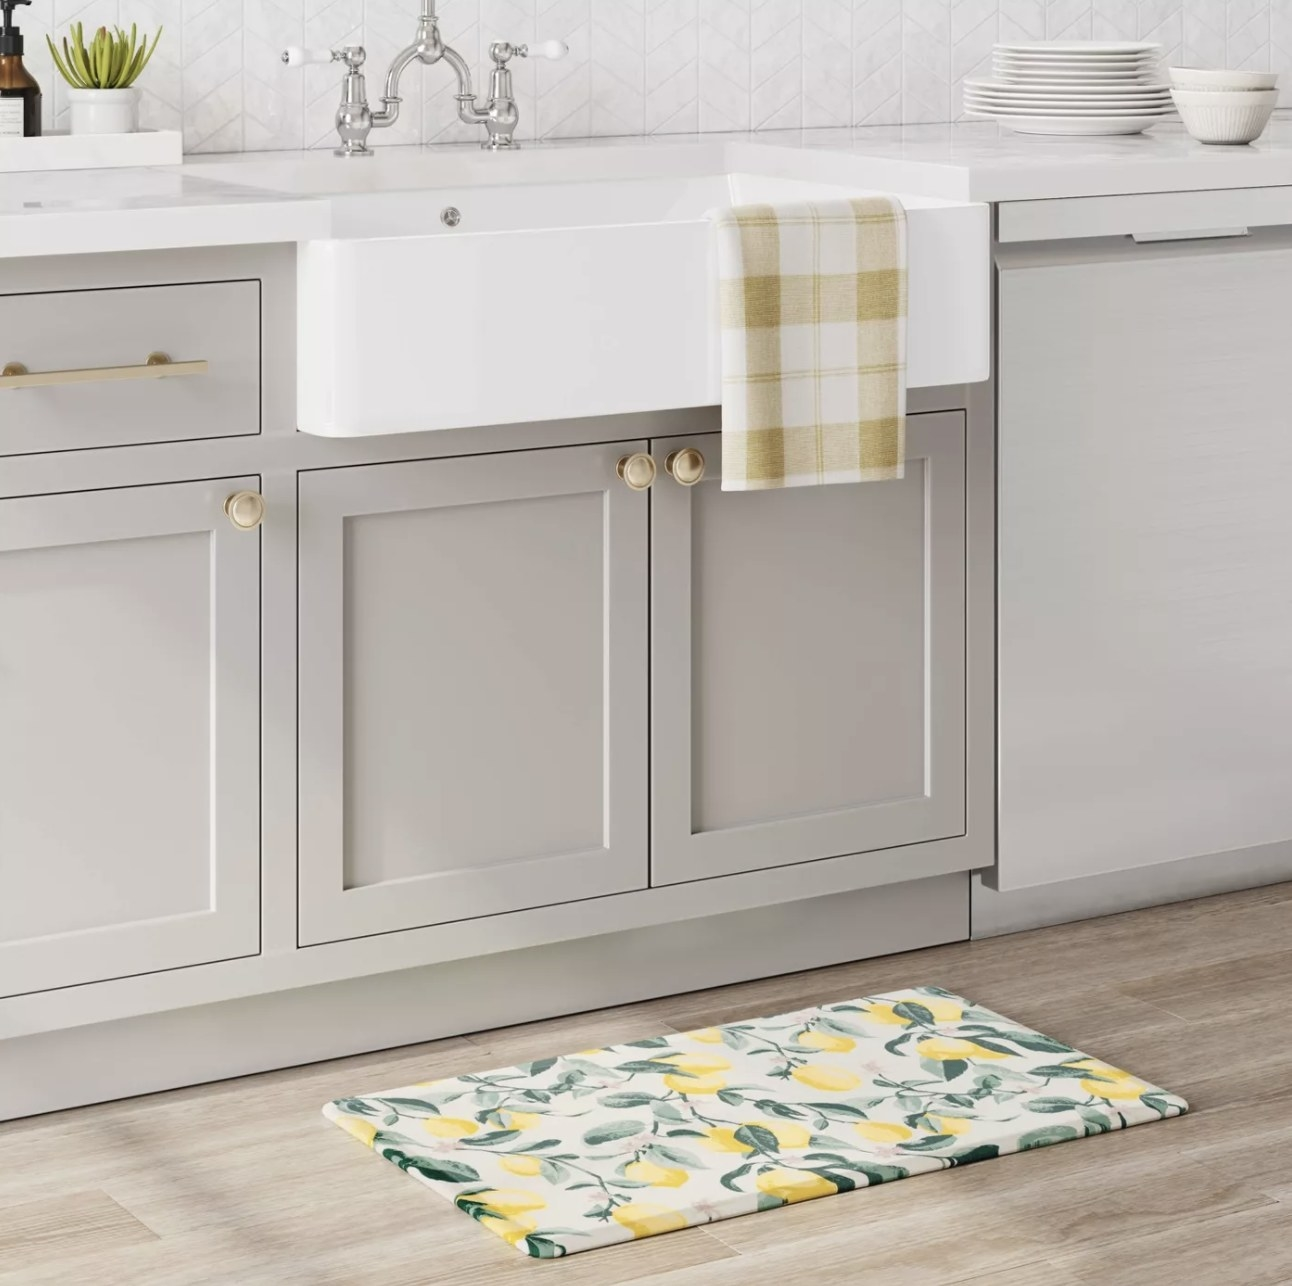 Lemon printed mat in kitchen